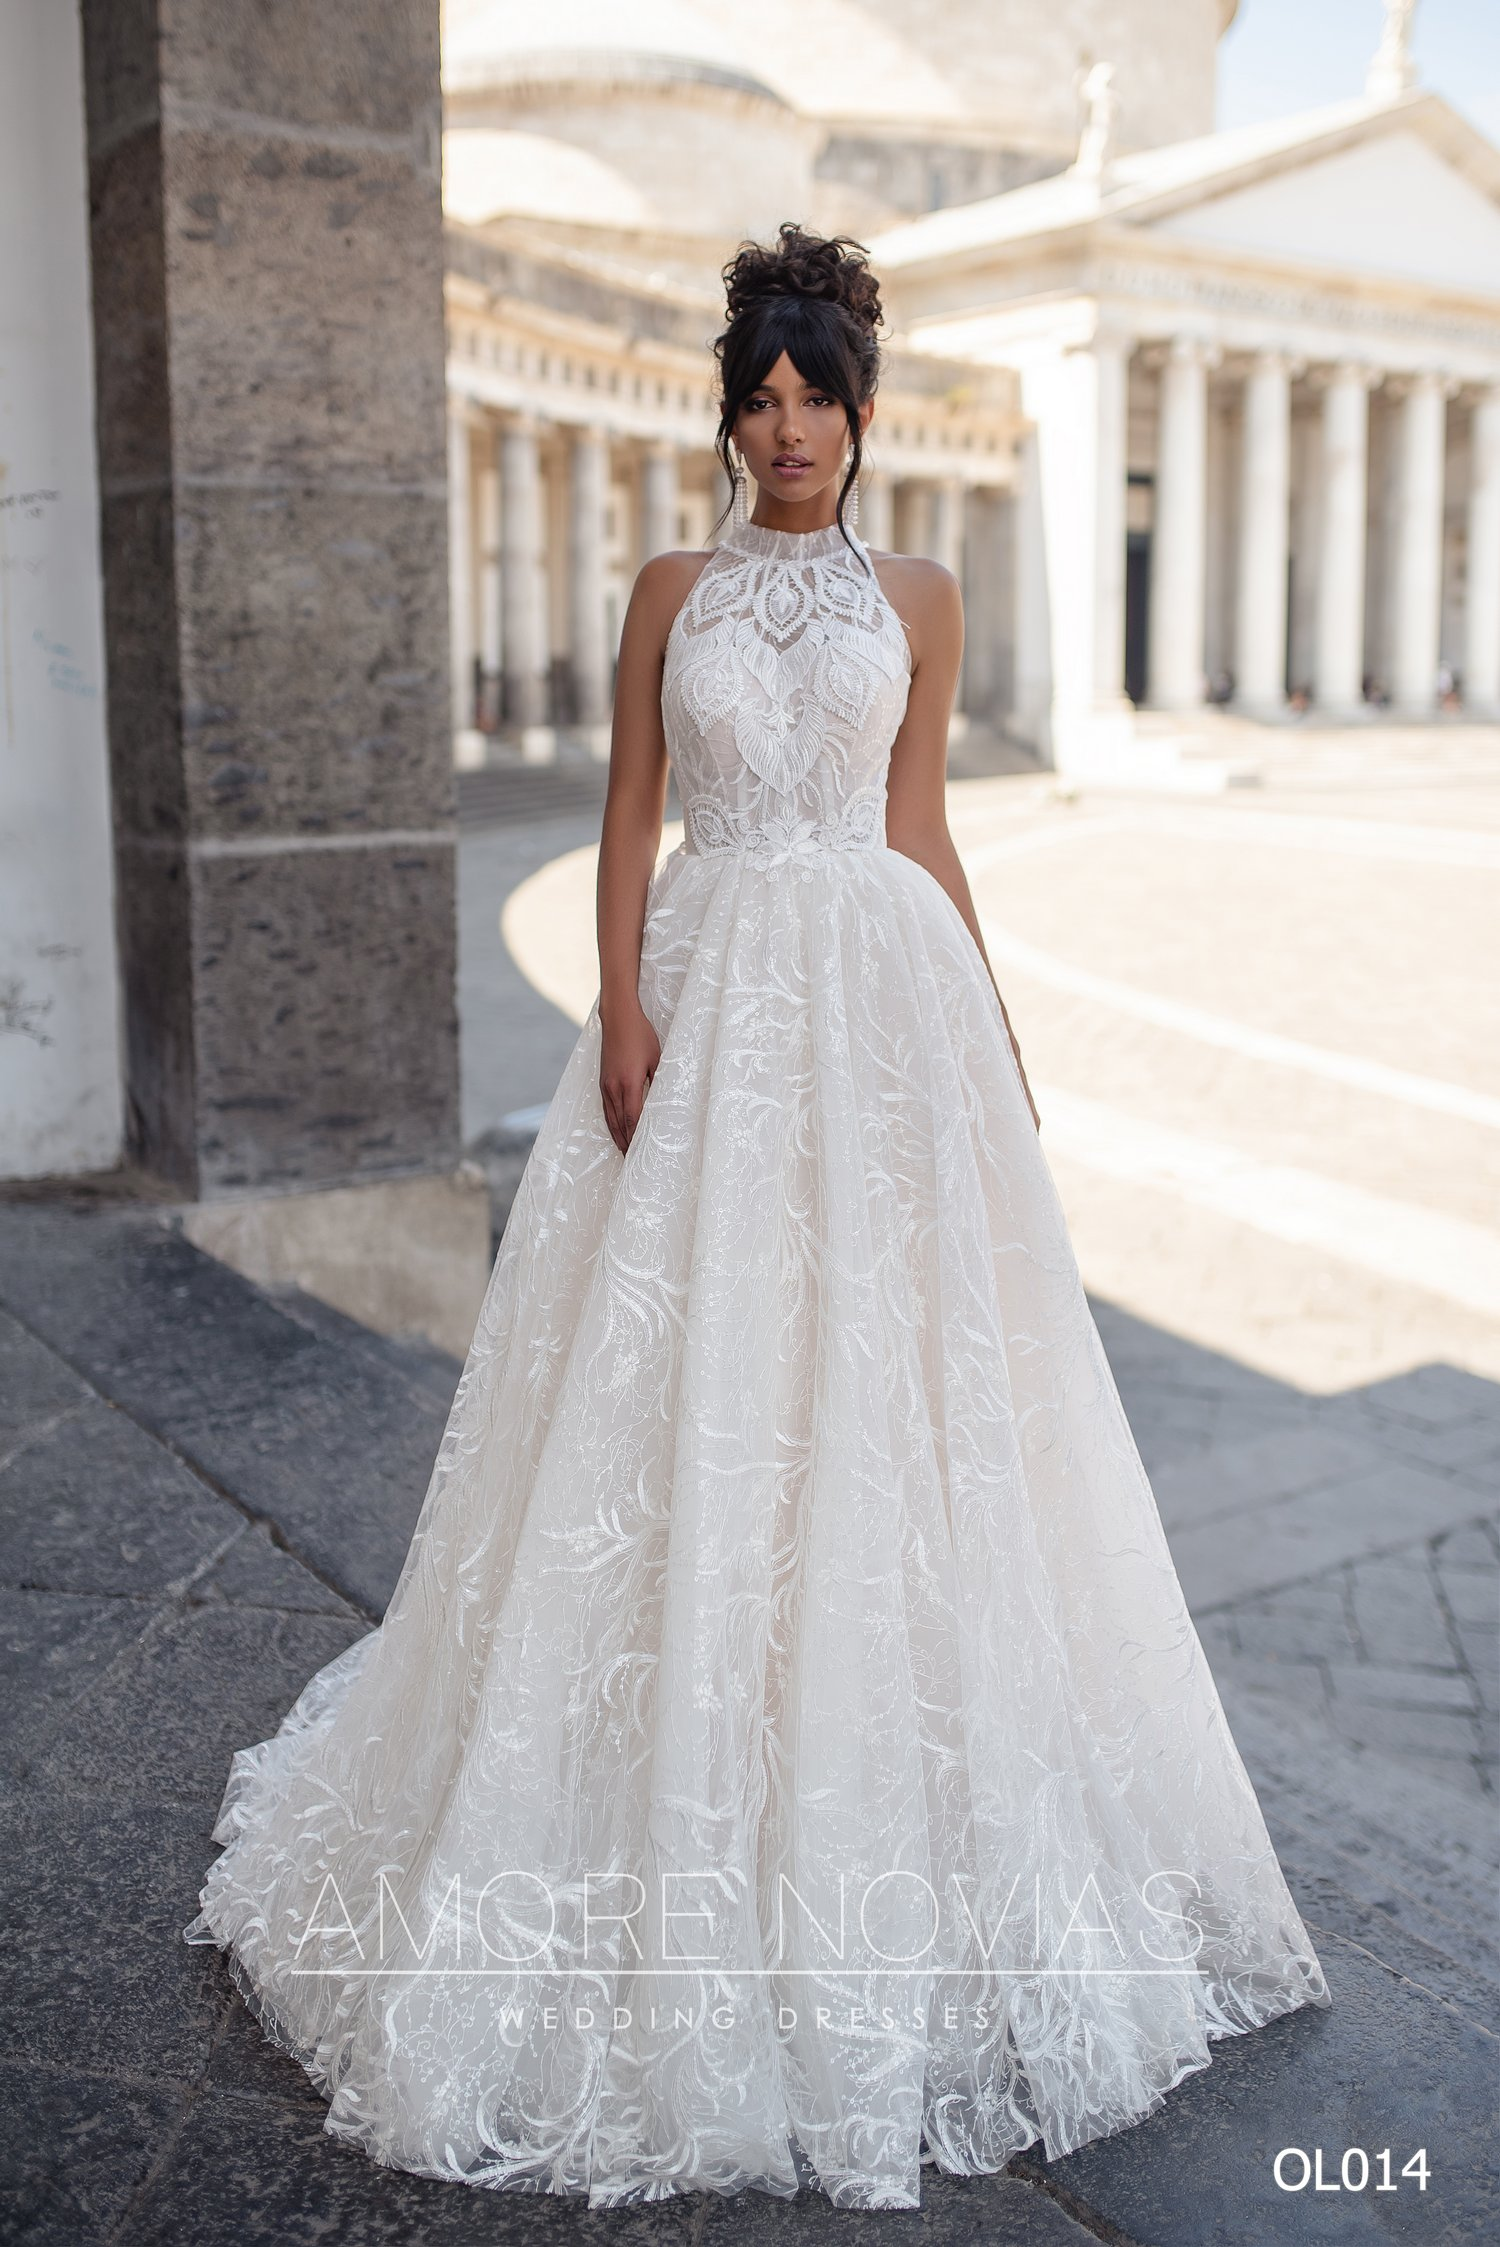 http://amore-novias.com/images/stories/virtuemart/product/OL014       (1).jpg